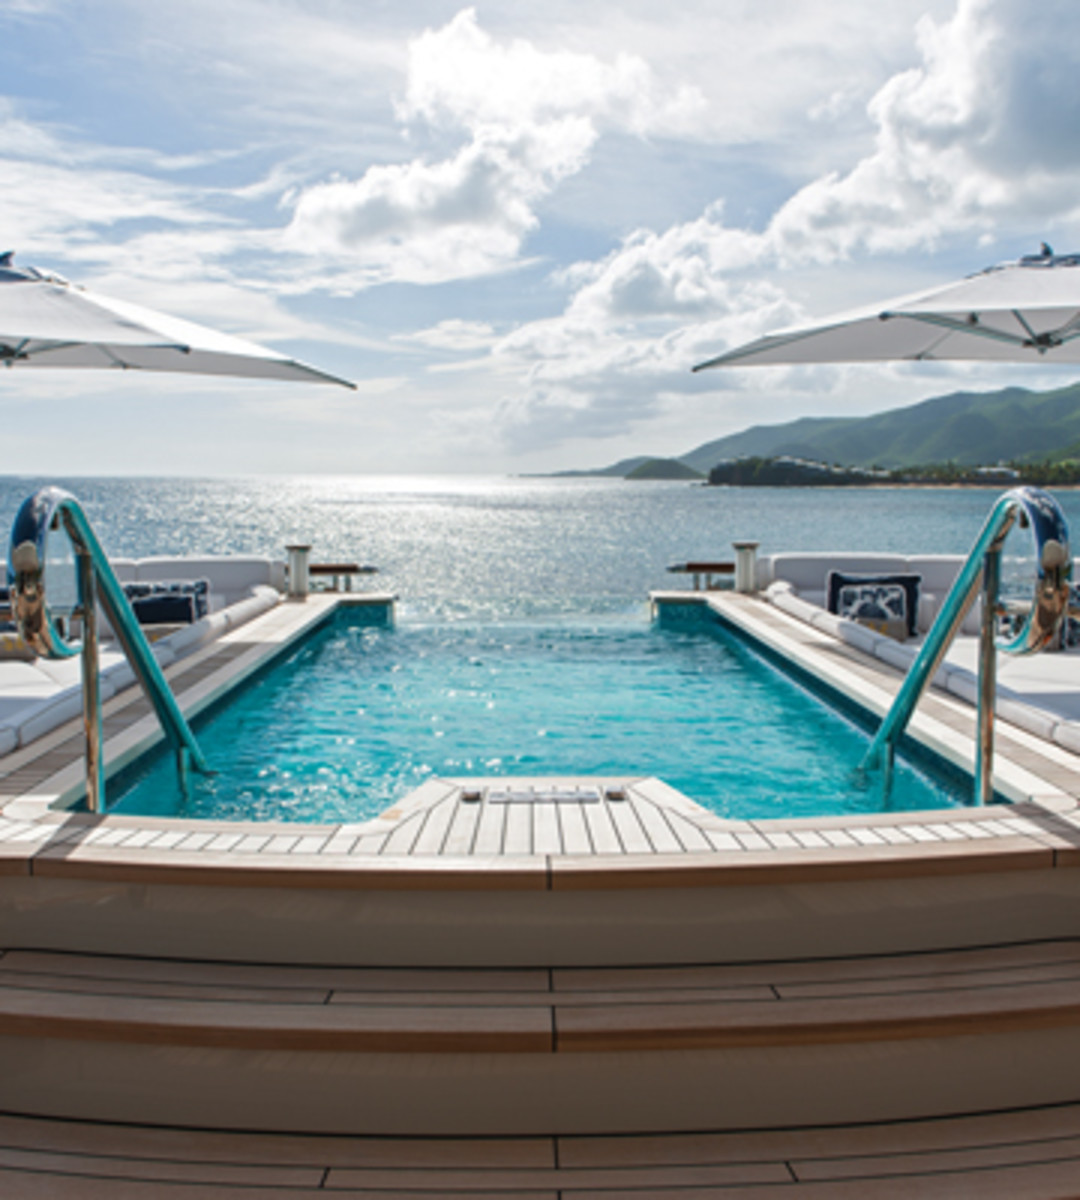 The spa pool with its infinity glass wall for uninterrupted sea views and surrounding sun beds on Lurssen's Quattroelle